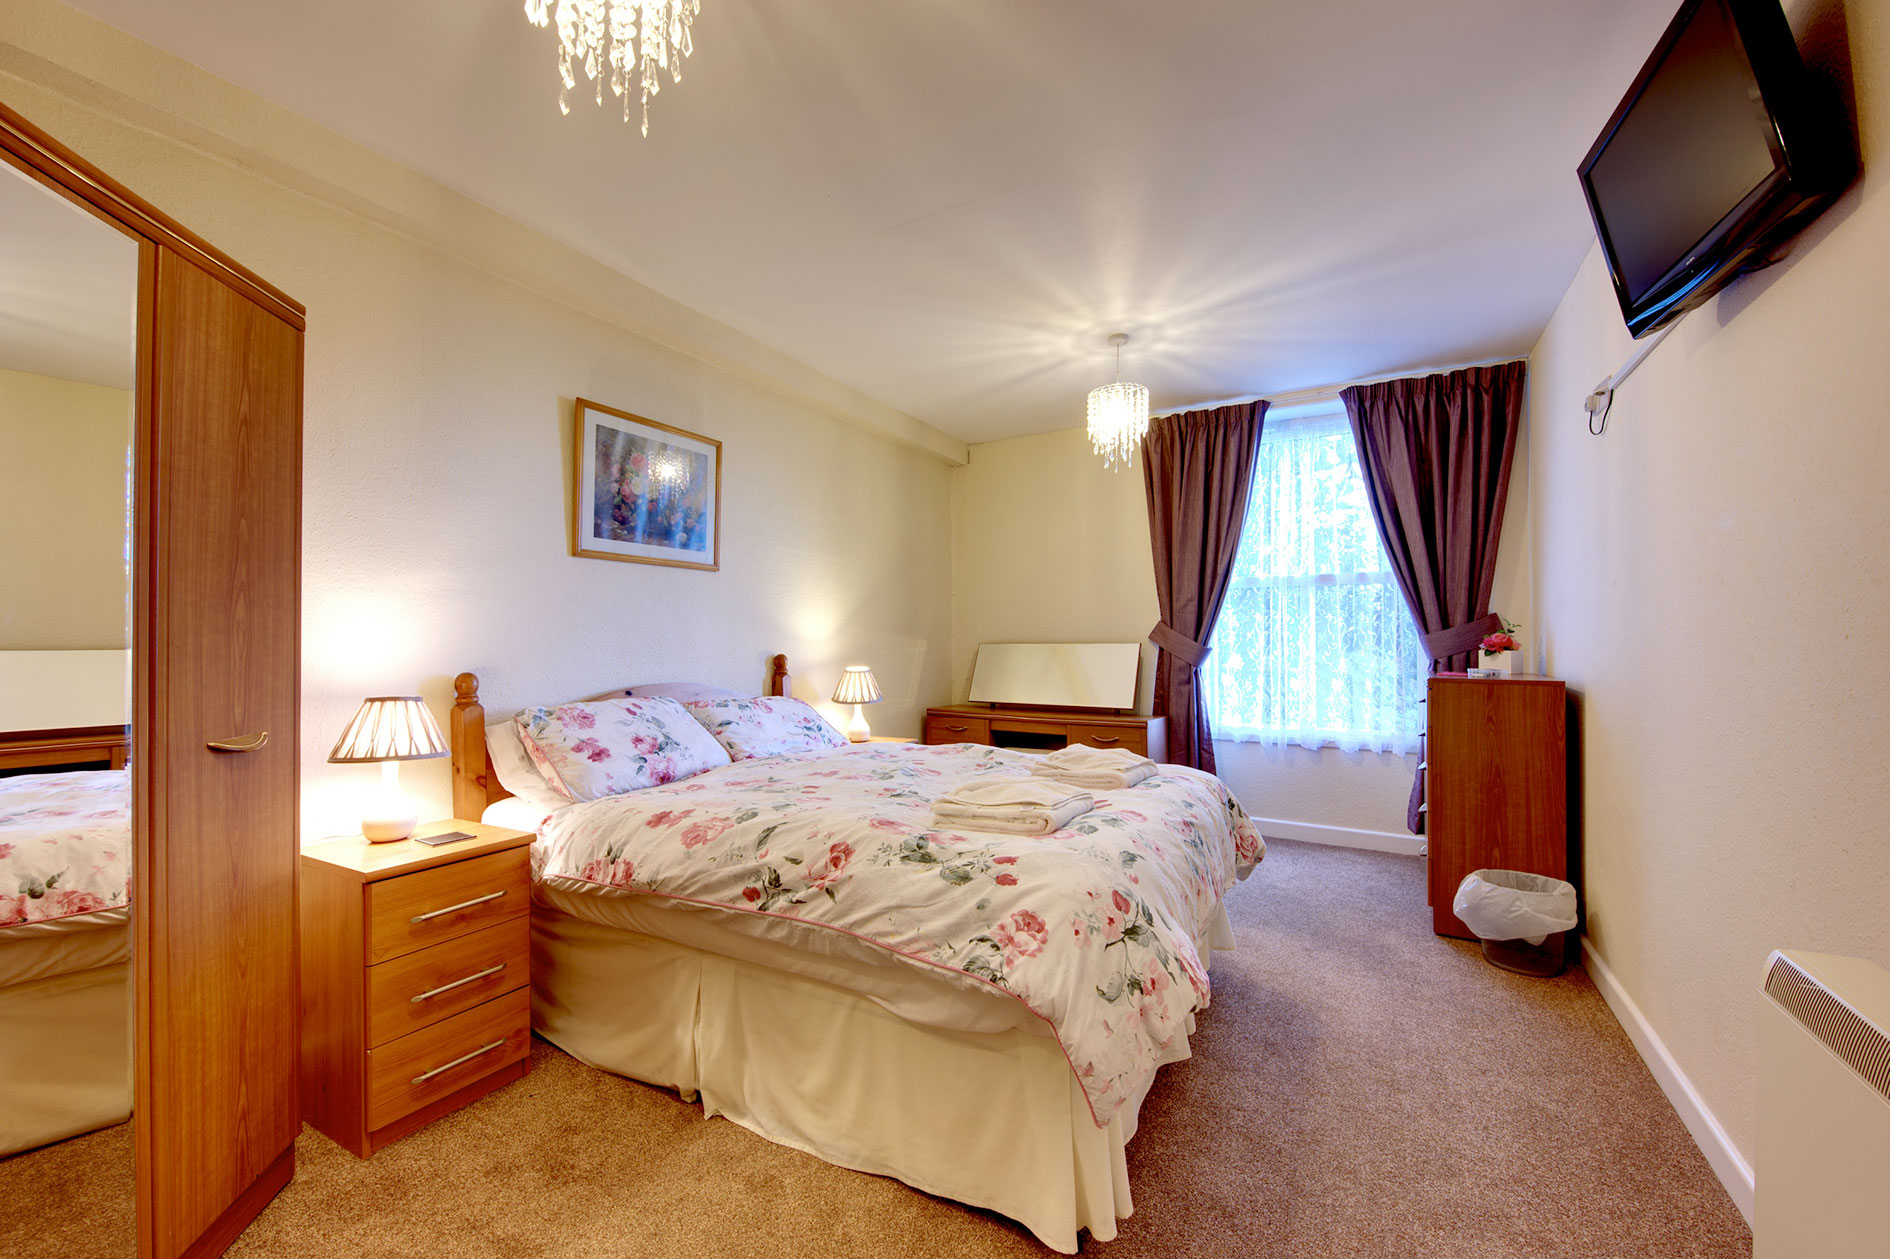 Lit Bedroom Containing A Double Bed With Red Flower Covers Plus Wooden Furniture And Tv